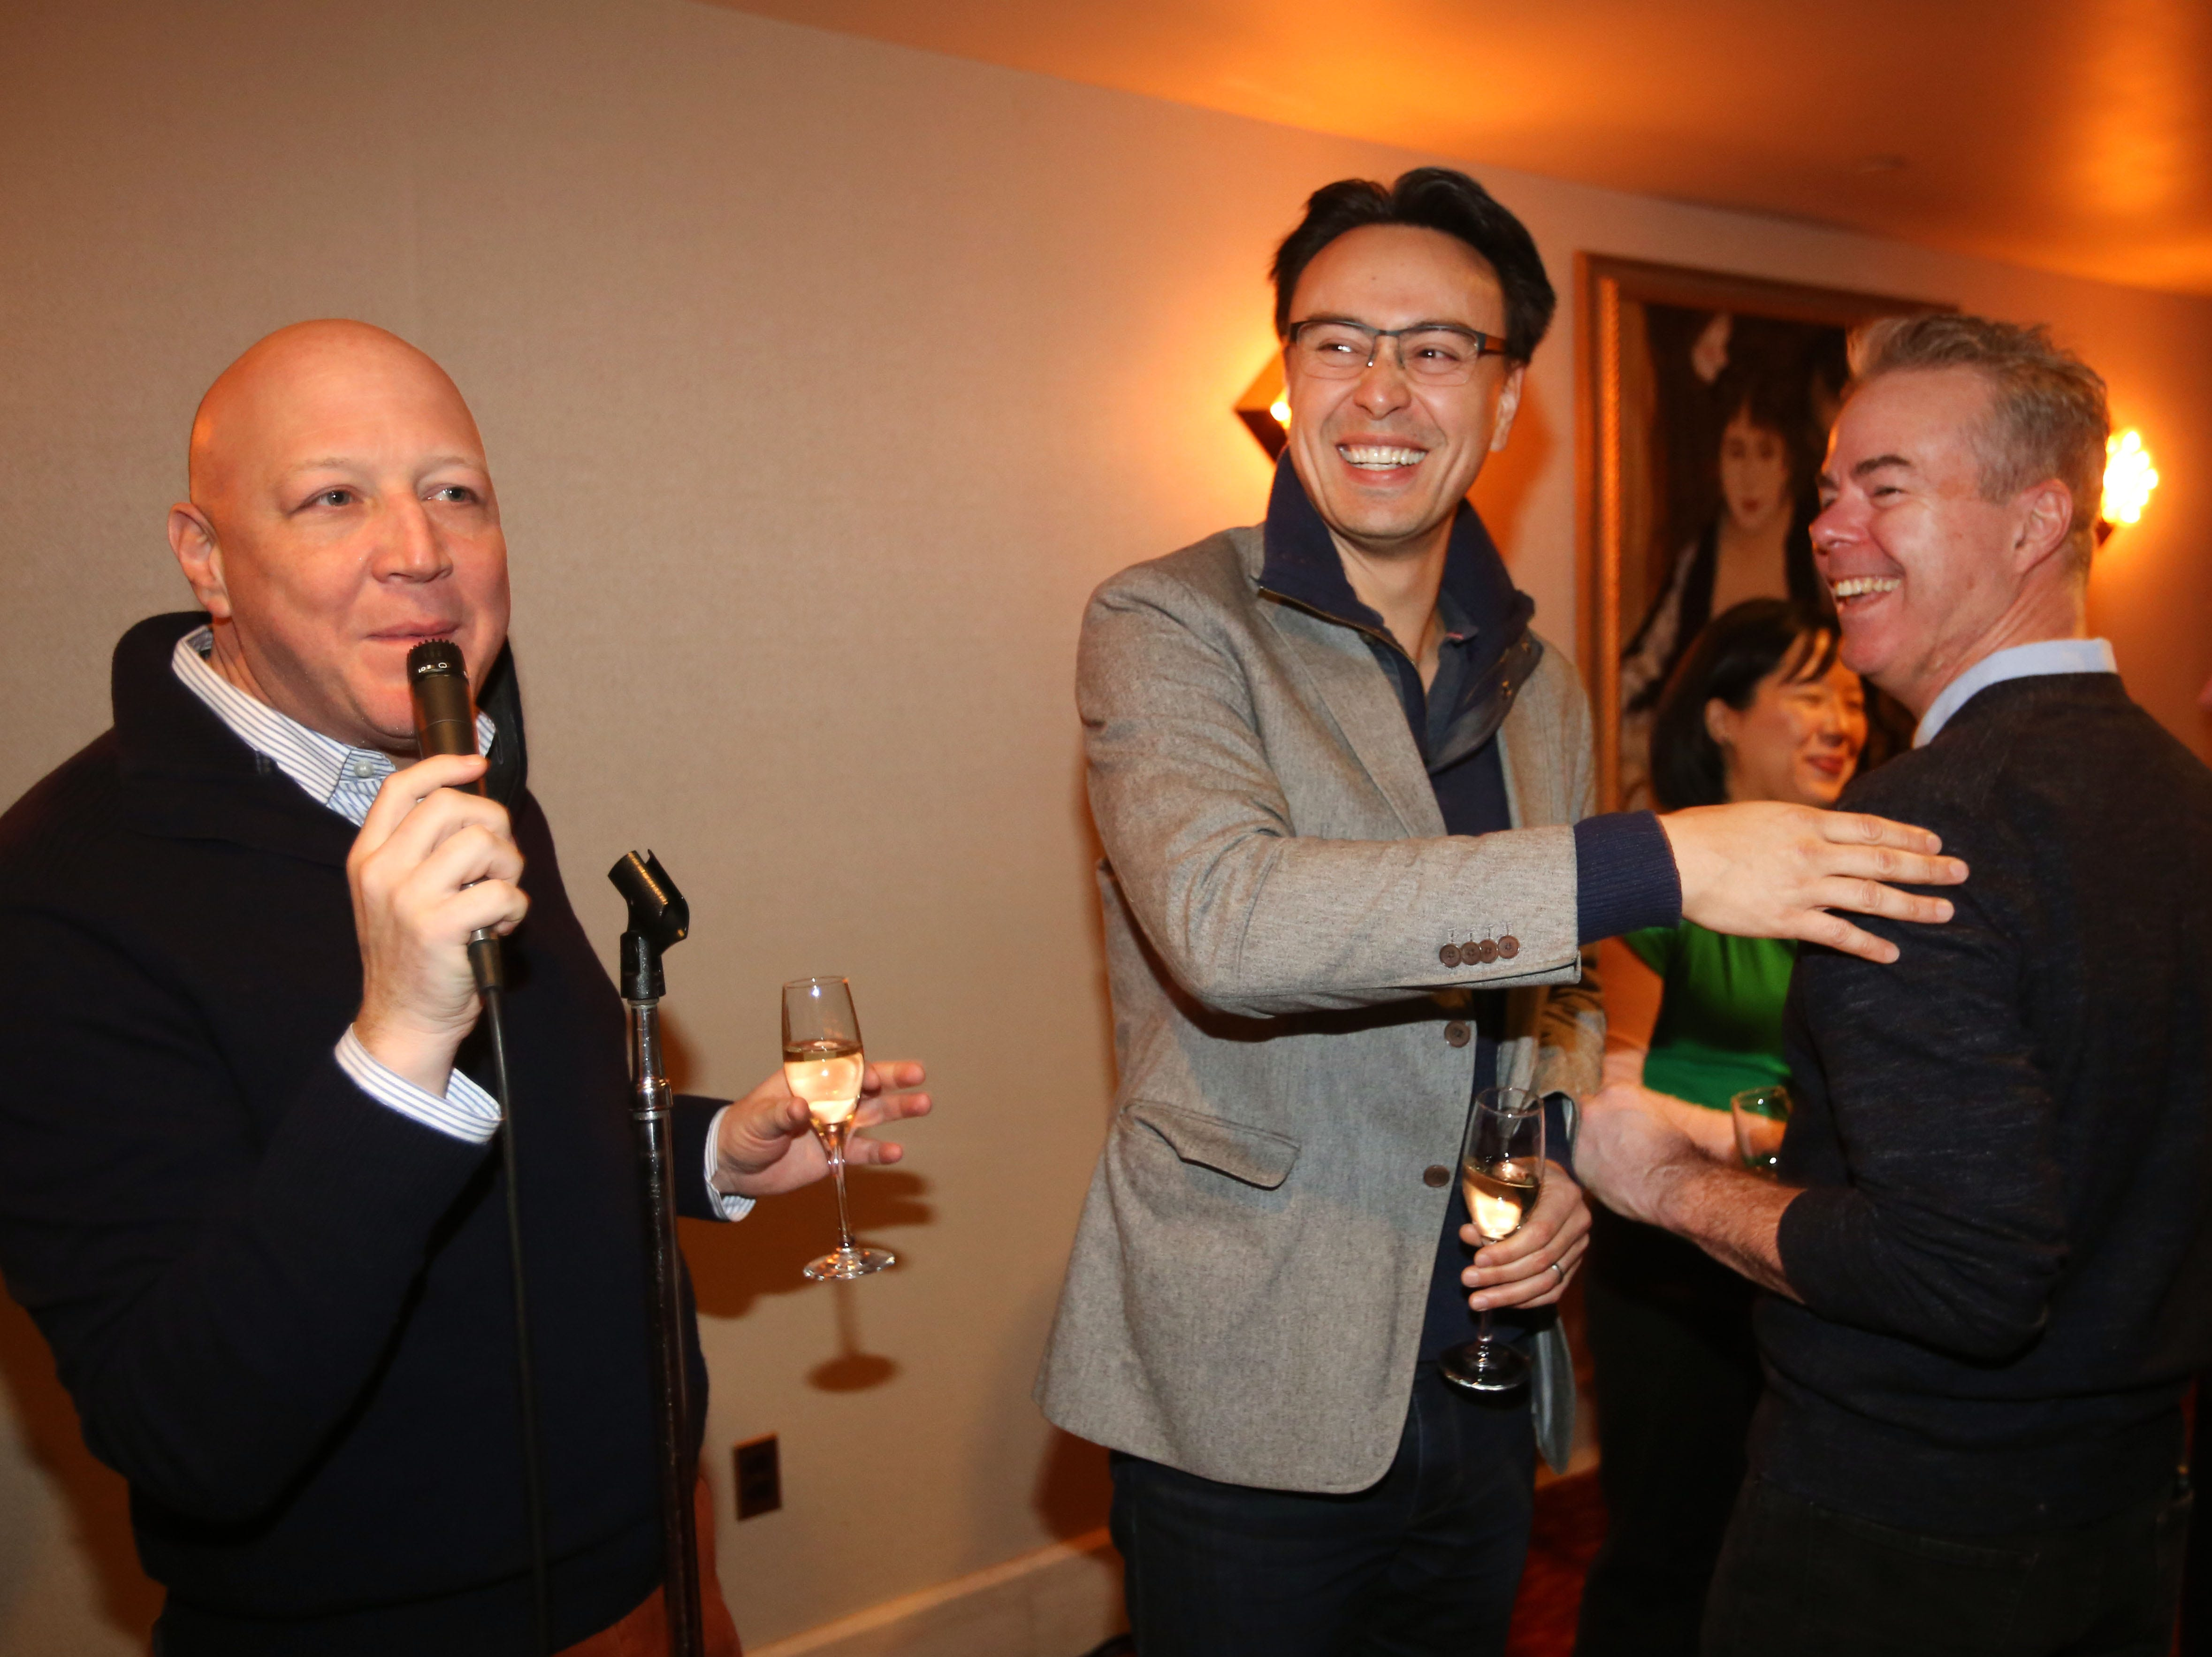 Milwaukee Symphony president and CEO Mark Niehaus has the mike; new music director designate Ken-David Masur (center) and concertmaster Frank Almond have the smiles.